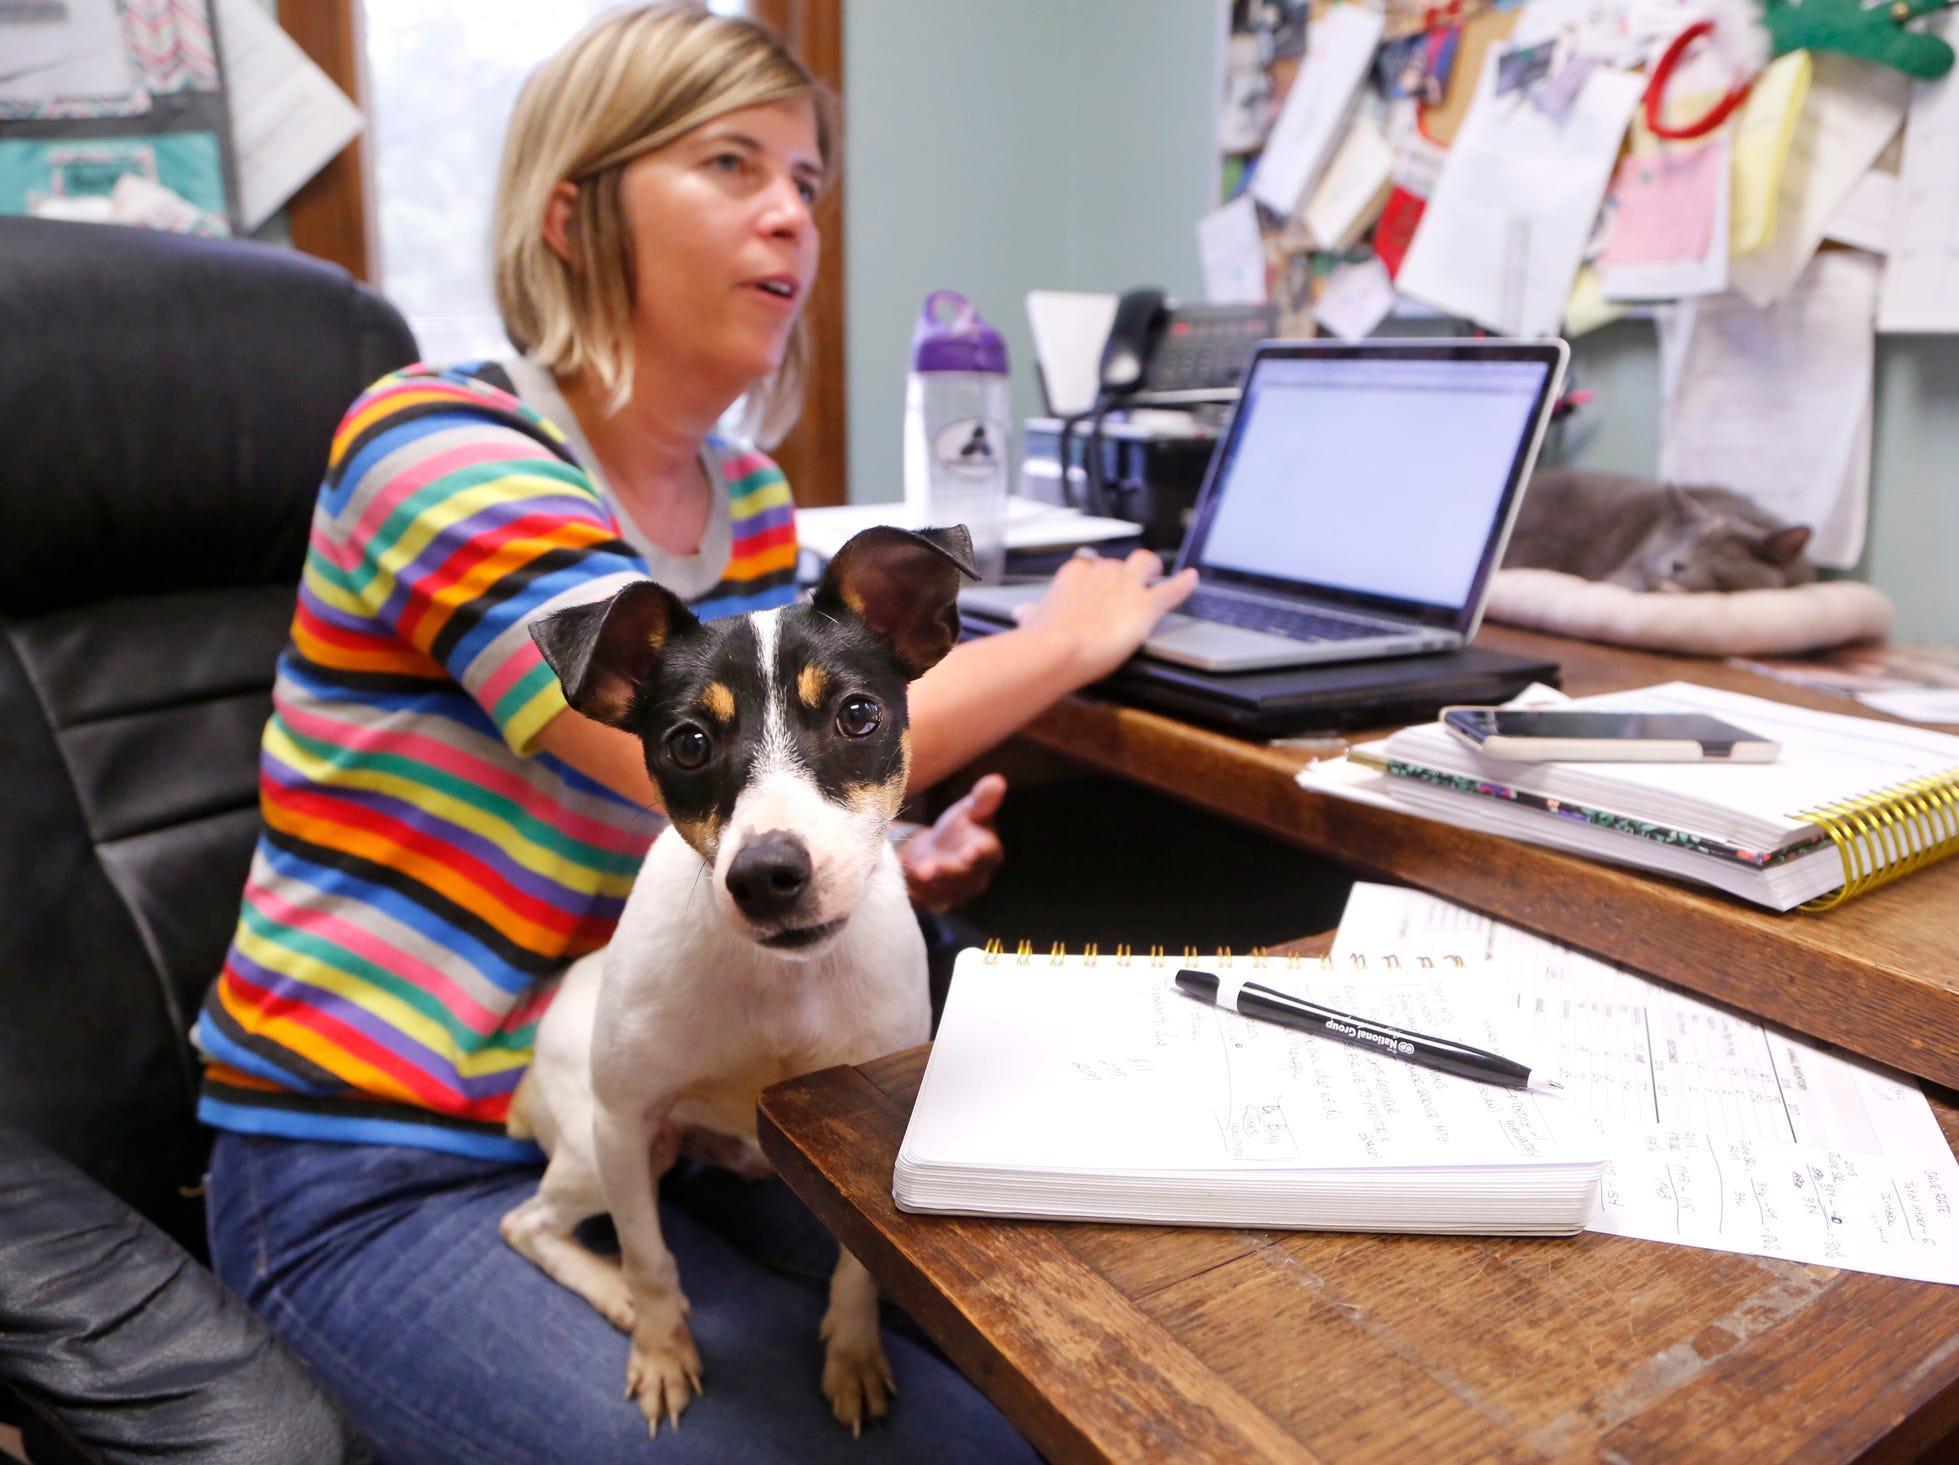 "Executive director Stacy Rogers, background, discusses overcrowding issues as a fox terrier that arrived just a day earlier hops onto her lap Wednesday, July 11, 2018, at Almost Home Humane Society, 1705 S. Second Street in Lafayette. Rogers said there are currently 300 cats and 75 dogs at Almost Home. ""We have more dogs than we can handle,"" she said."